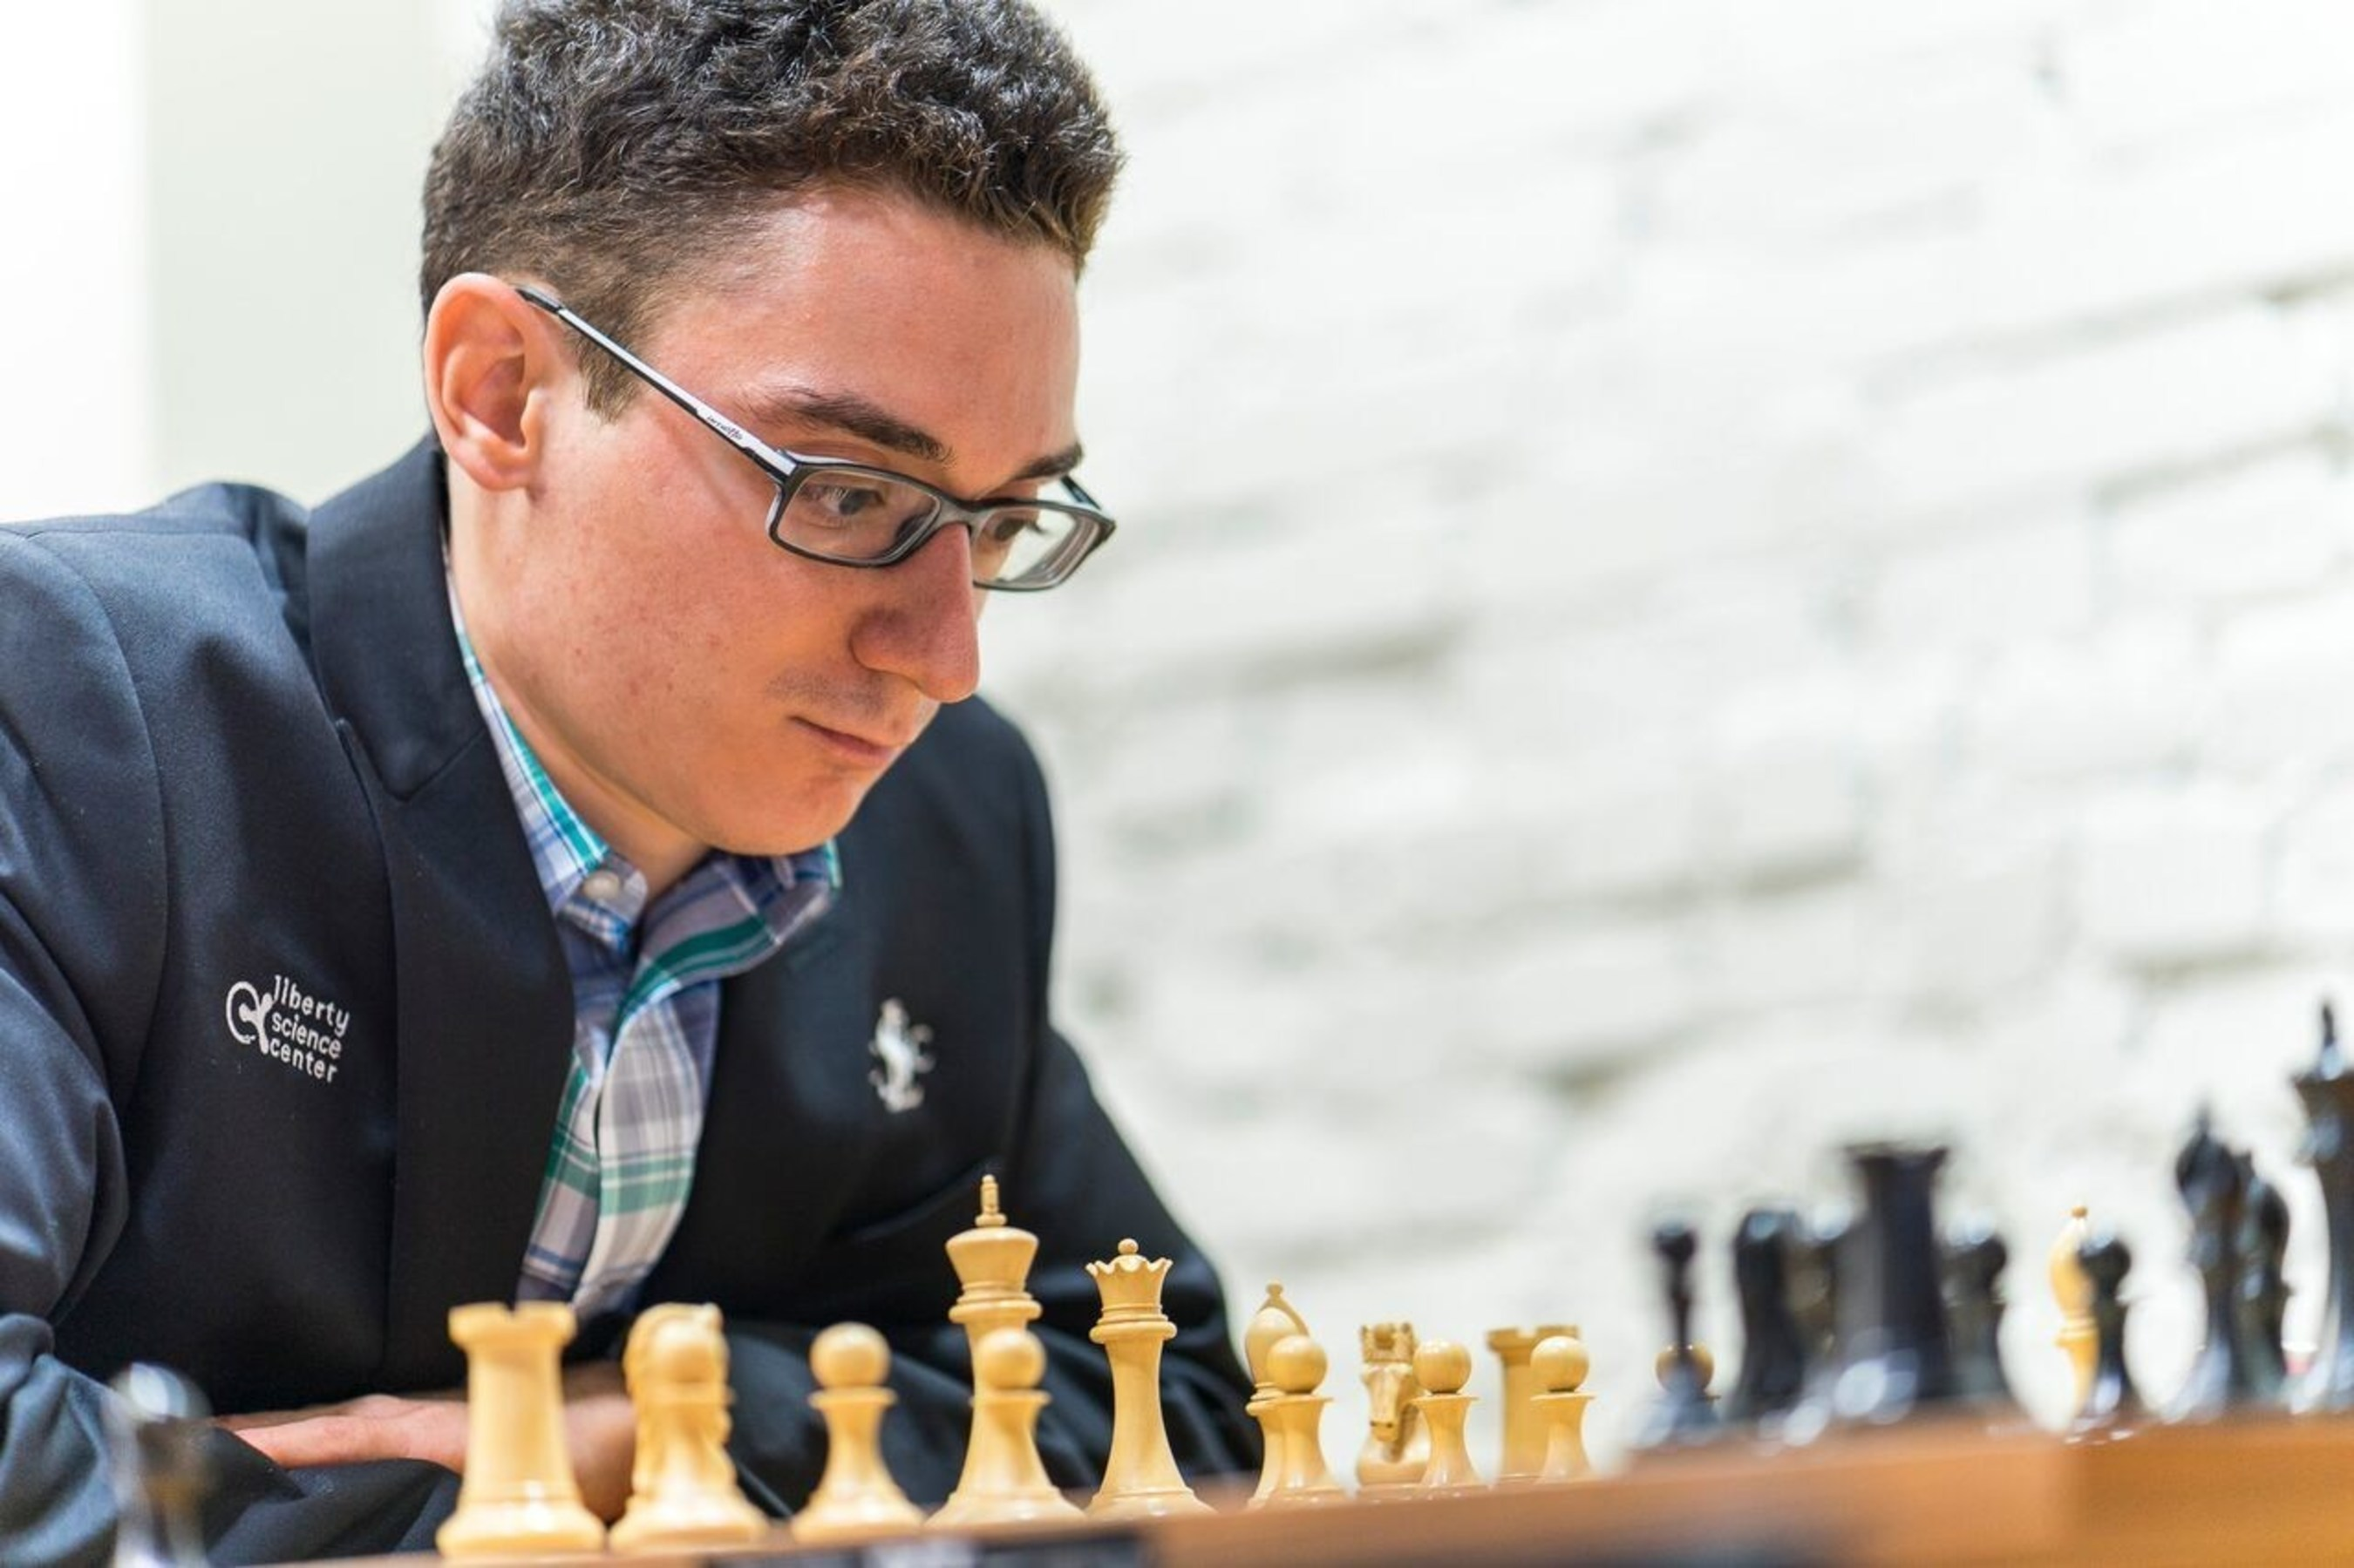 Grandmaster Fabiano Caruana was named the 2016 U.S. Chess Champion upon the concluding round of the U.S. Chess Championships at the Chess Club and Scholastic Center of Saint Louis (CCSCSL) April 25. Caruana faced 11 opponents in nearly two weeks of tournament play to win the title and $50,000 prize. Caruana, 23, and 2016 U.S. Women's Champion, International Master Paikidze, 22, are among the youngest combined pair of U.S. Champions in the tournament's history.